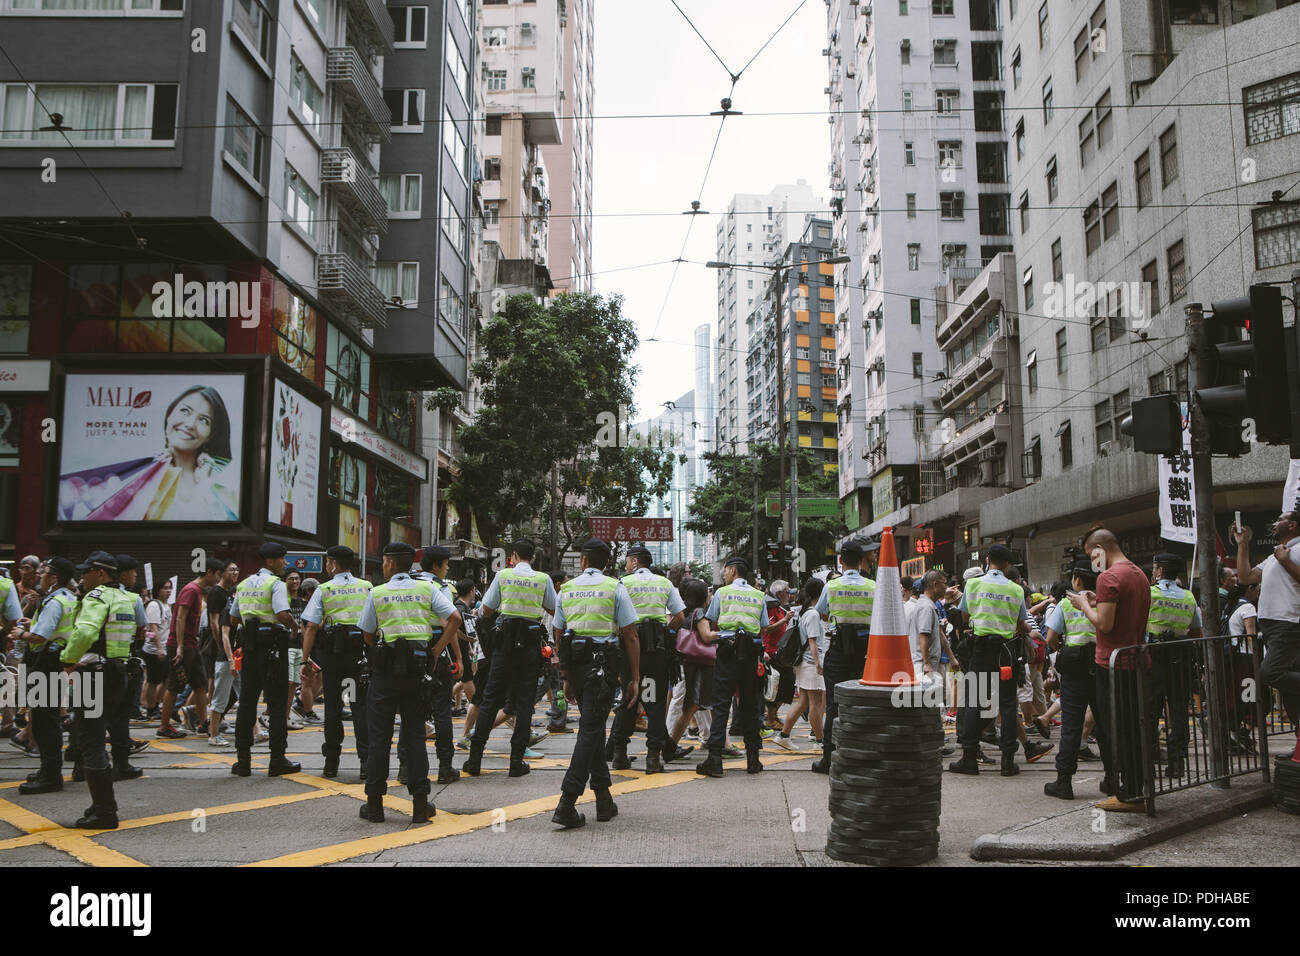 July 1, 2017 - Hong Kong, Hong Kong - Police seen monitoring the thousands of demonstrators marching..Thousands came together and demonstrated to mark the 20th anniversary of the Handover from Britain to China, Hong Kong's return to China on July 1st 1997. The protestors marched through sun and rain from Victoria Park to Admiralty, taking a stand on a variety of human-rights-related causes. (Credit Image: © Viola Gaskell/SOPA Images via ZUMA Wire) - Stock Image